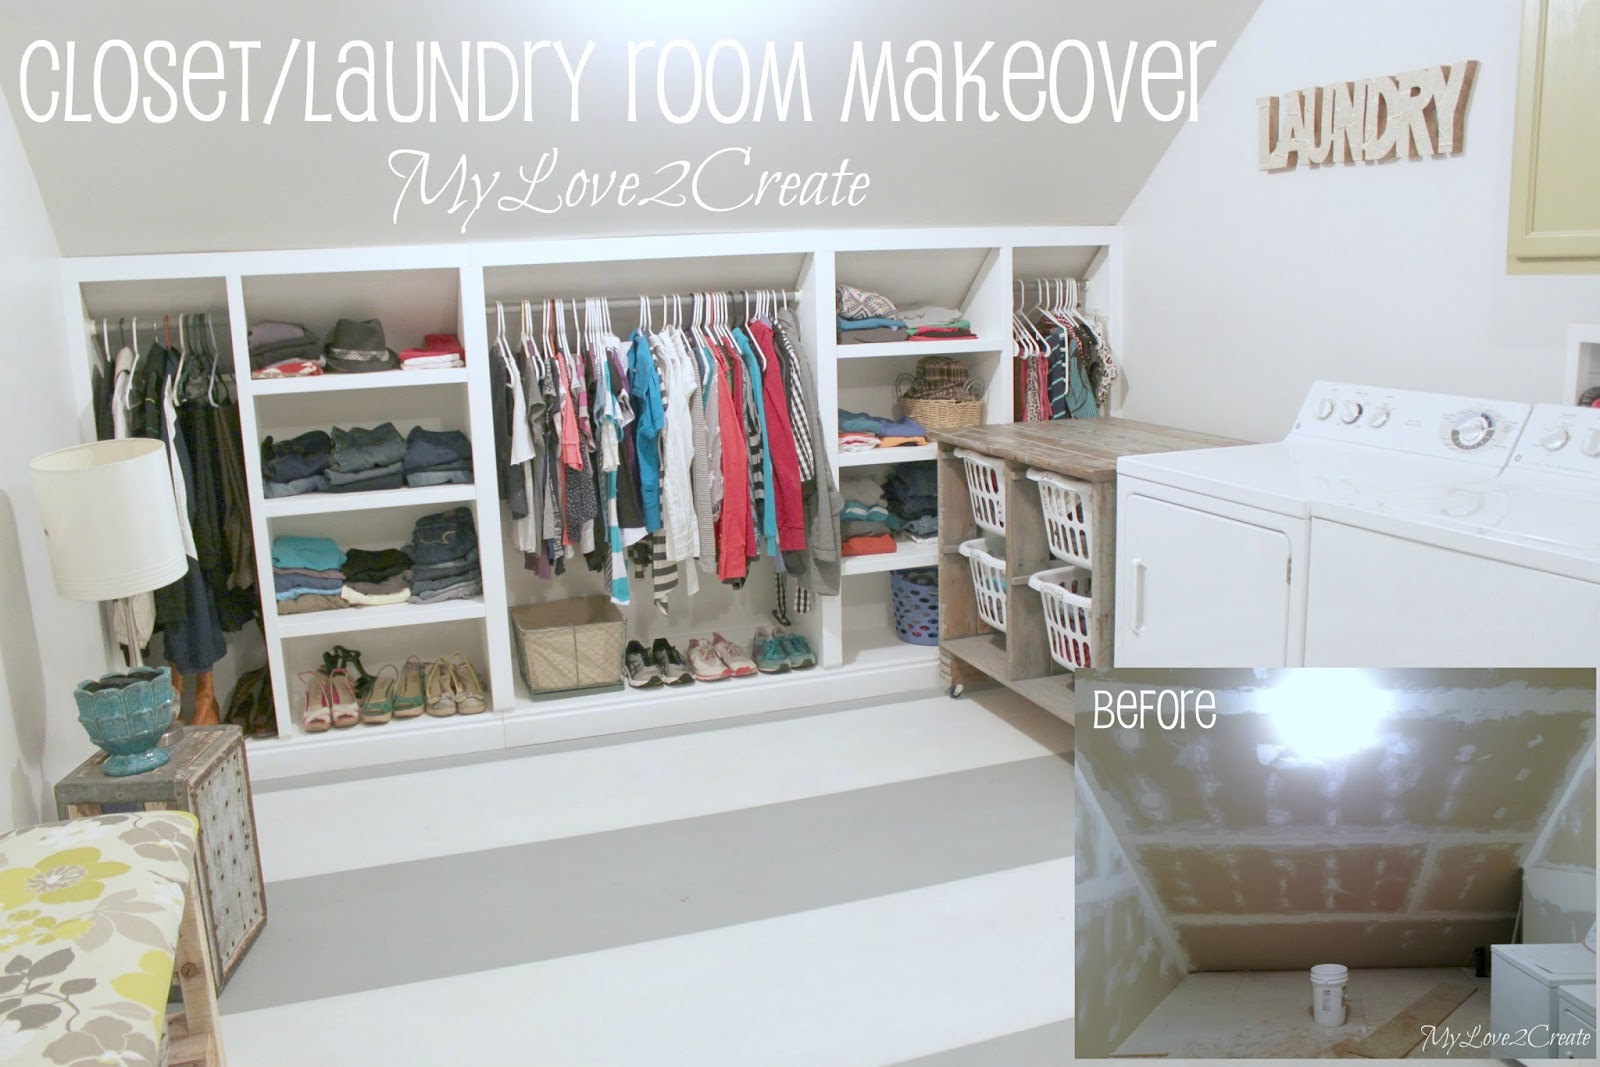 attic sewing room ideas - Closet Laundry Room Makeover